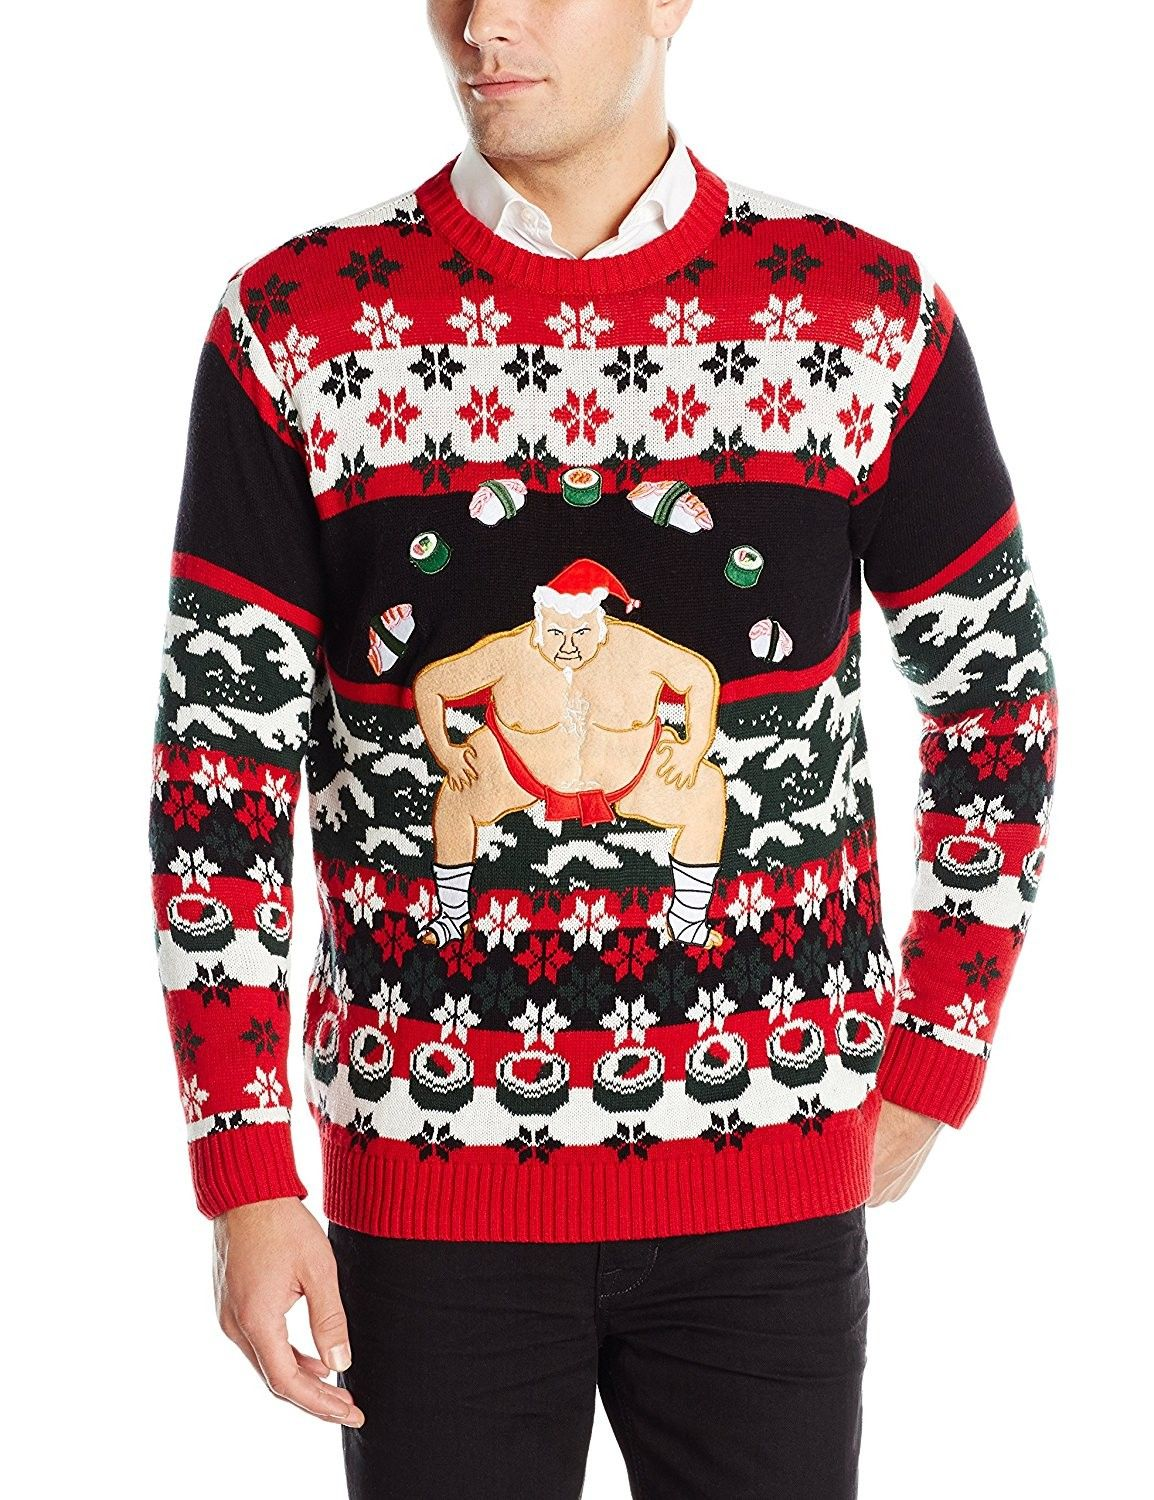 Blizzard Bay Mens Fluffy Christmas Chicken Ugly Christmas Sweater Sweater